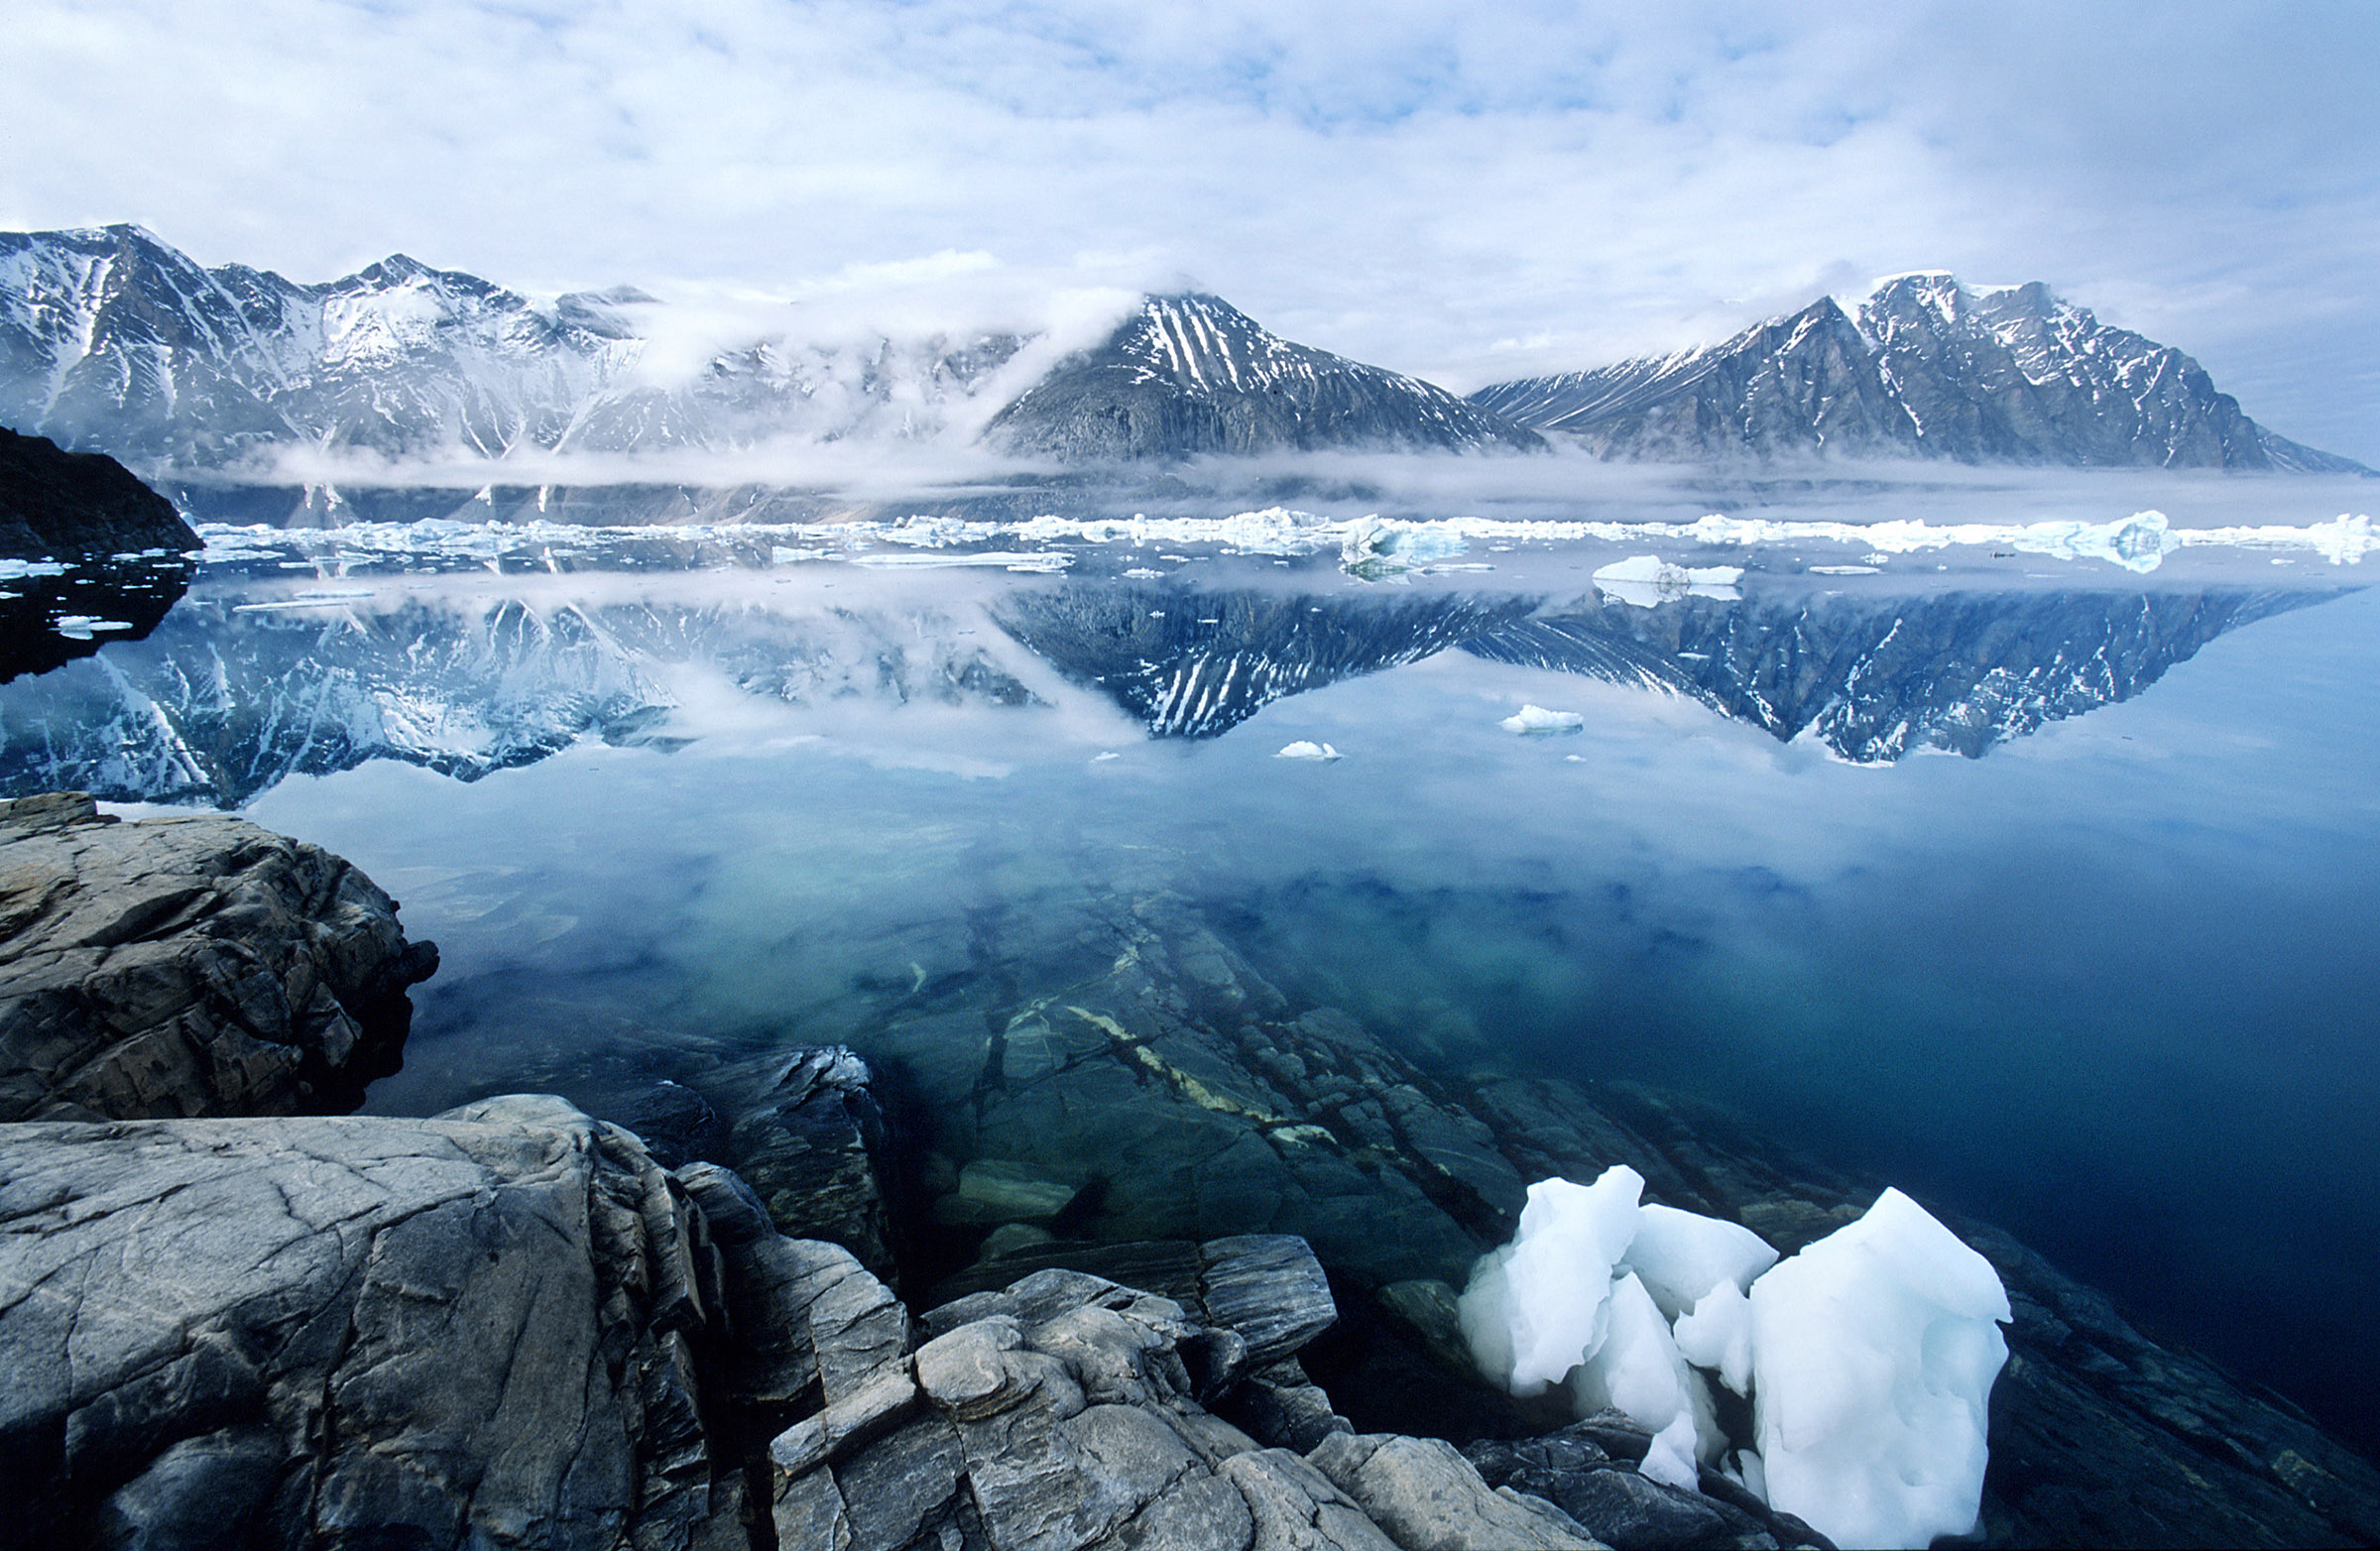 greenland-reflection-sea-mountains